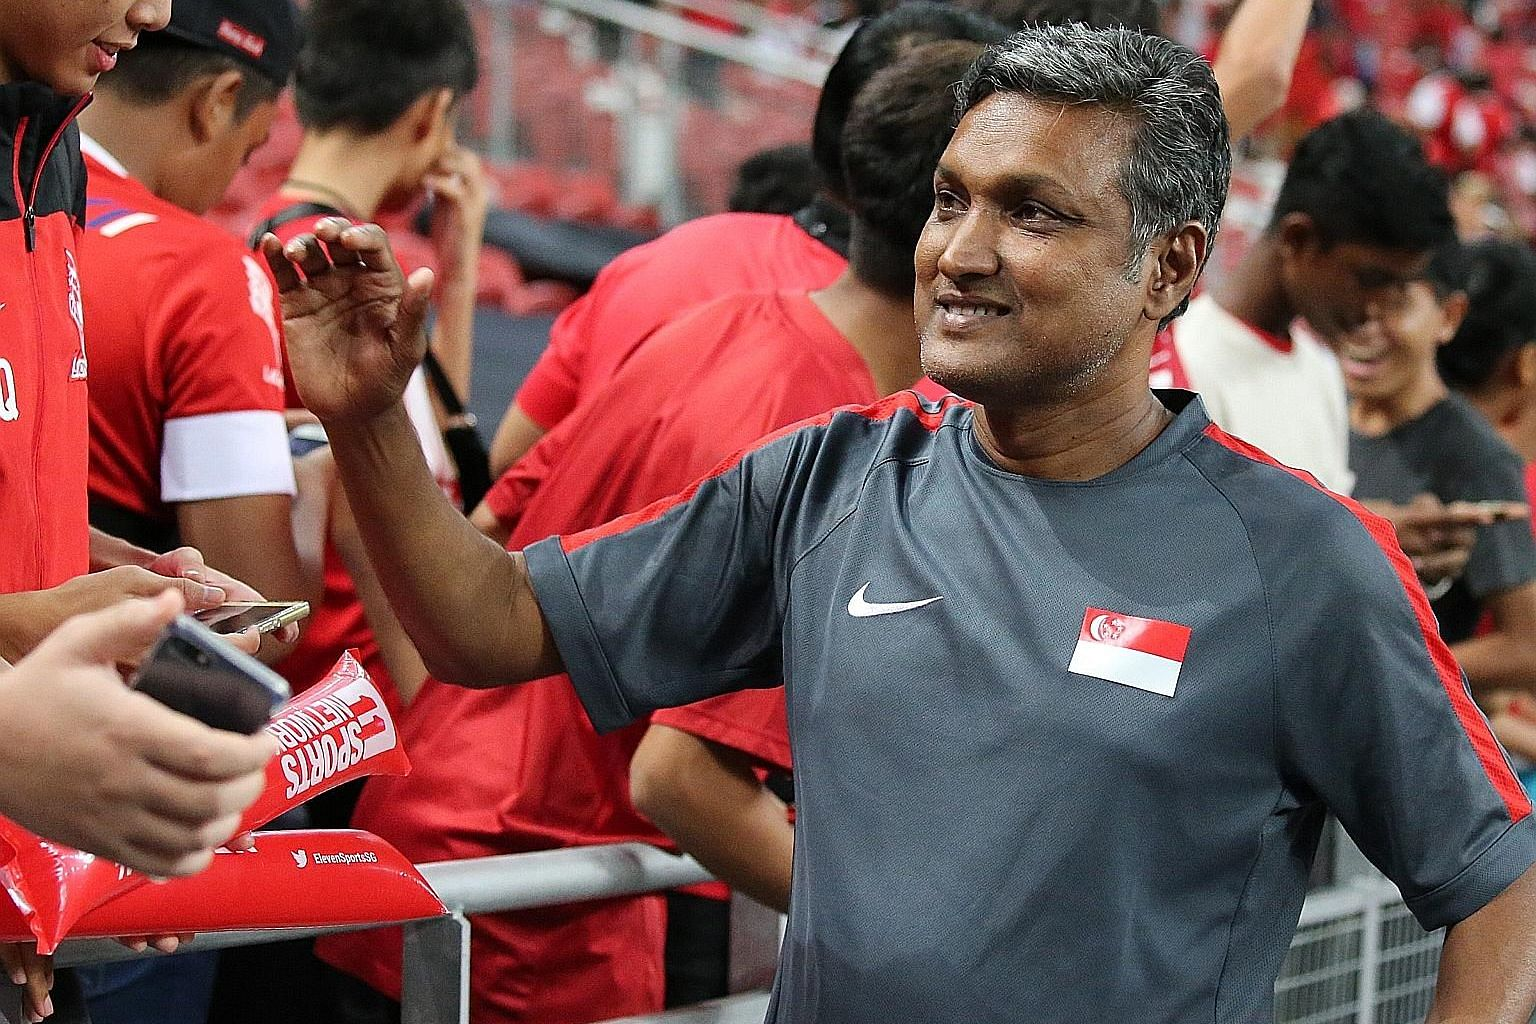 Despite criticism of national coach V. Sundram Moorthy's tactics, FAS president Lim Kia Tong believes the tactician will deliver.